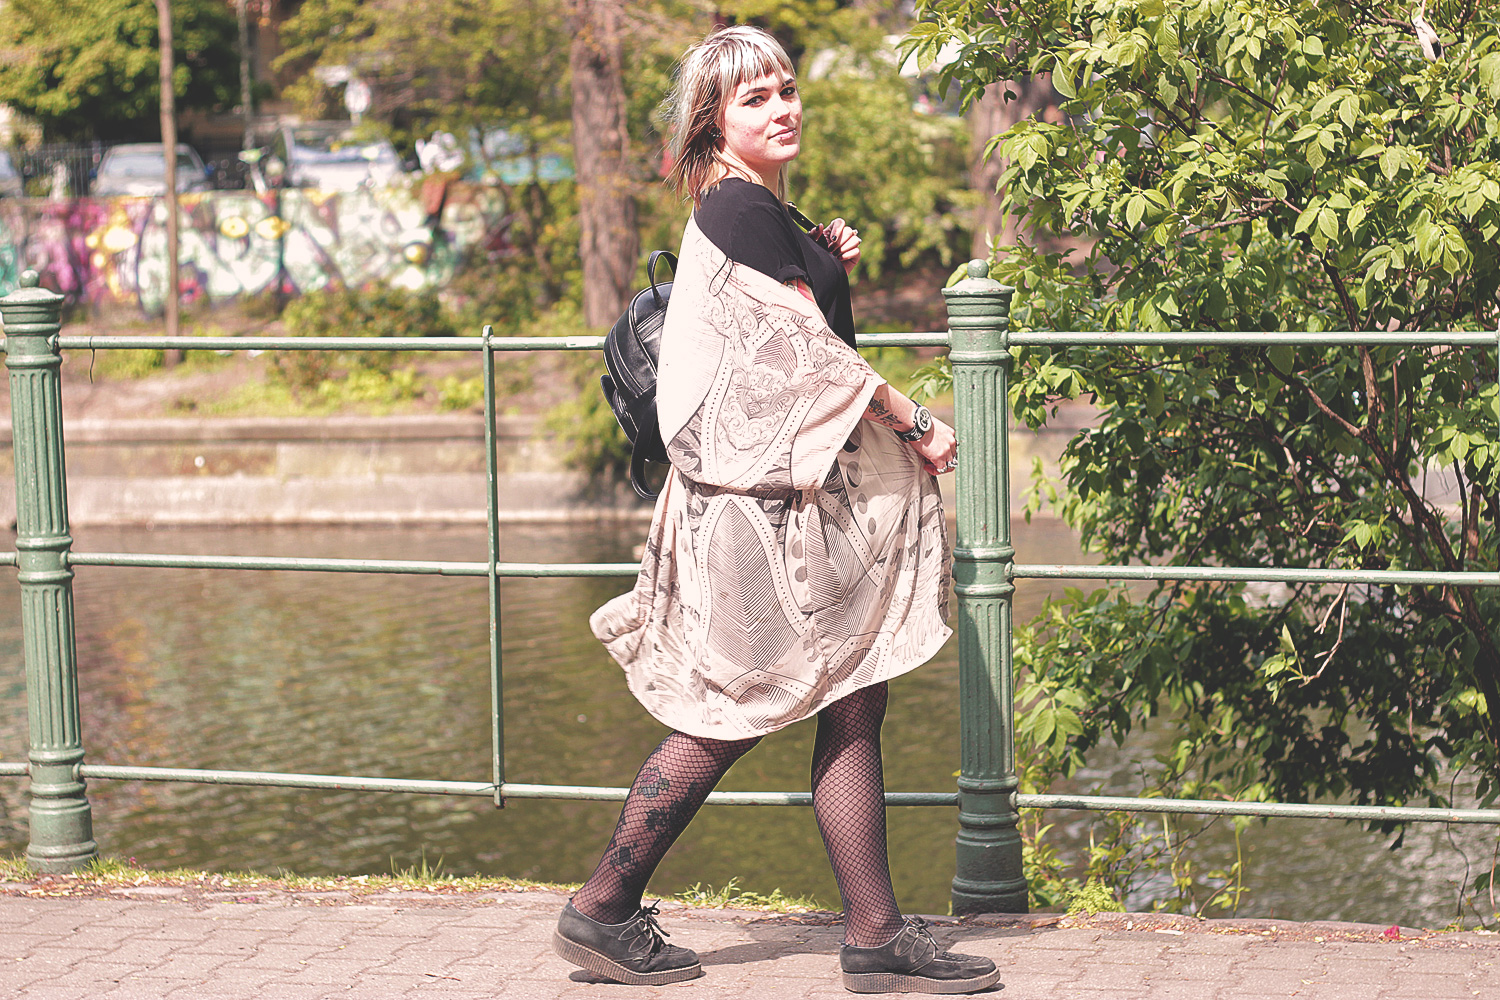 pusheen, crazy cat lady, katzenmädchen, nude, h&m, cardigan, chiffon, kleid, strumpfhose, simmer, katze, rucksack, katzenrucksack, miau, creepers, underground, boho, divided, alternative, alternative fashion, alternative girl, alternative mode, altgirl, berlin, berlin fashion, berlin fashion blogger, berlin mode, berlin streetstyle, blogger, fashion blogger, girls with piercings, girls with tattoos, grunge, grunge fashion, grunge mode, mode, Punk, punk fashion, punk mode, punkgirl, punkmädchen, scenehair, snakebites, split hair, splithair, tattoomädchen, tattoomodel